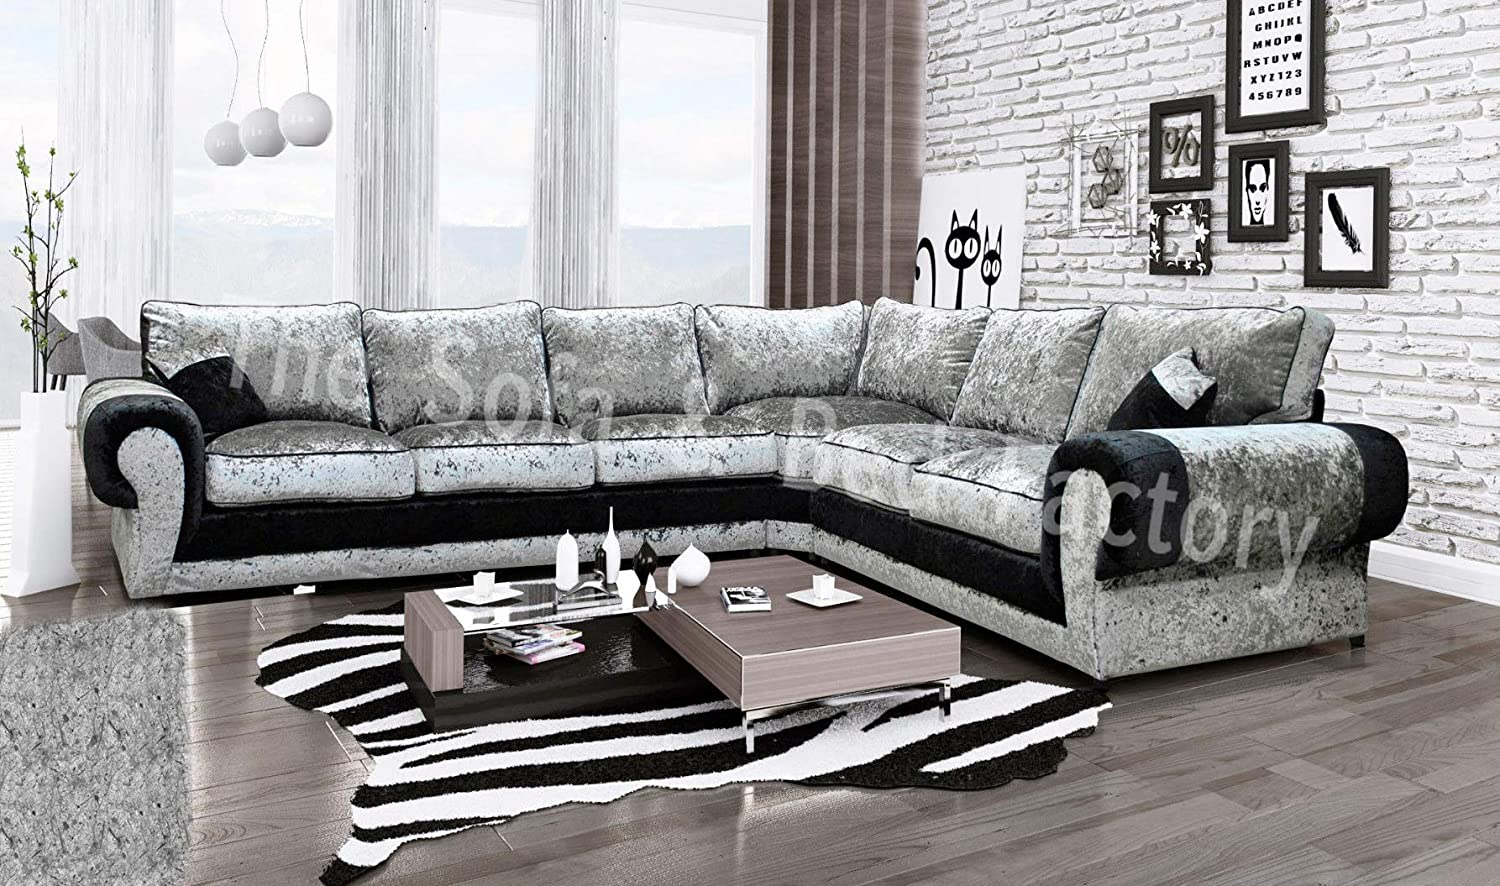 save off 090d0 37339 Details about Cheap Luxury Lara Crushed Velvet Large 6 Seater Corner Sofa  Black And Silver 3C2